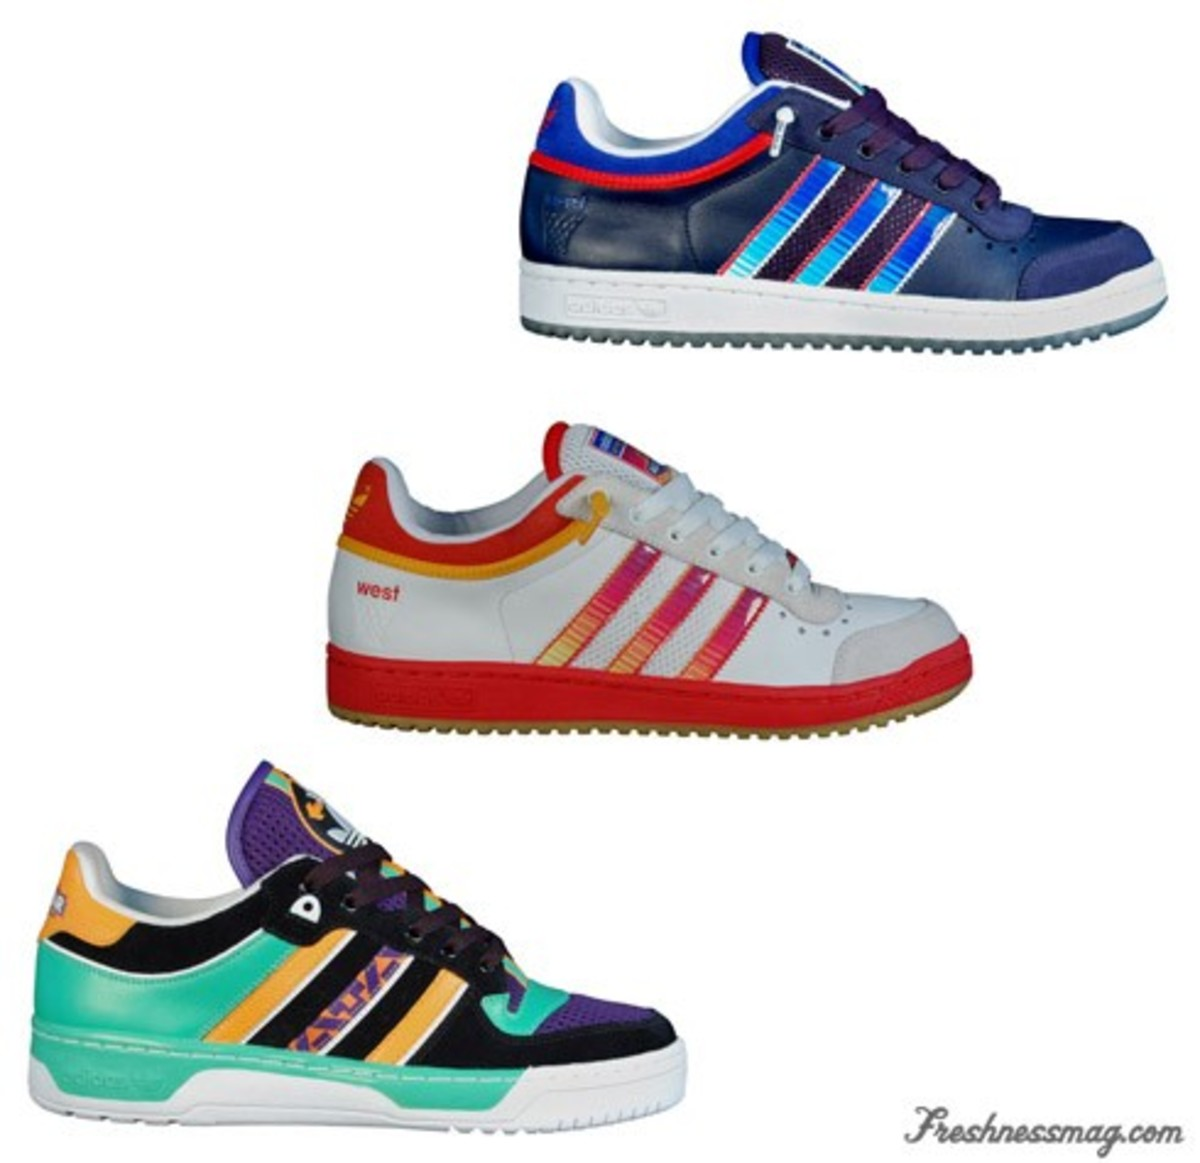 sufrir Cambiable Igualmente  adidas Originals - NBA All Star Attitude Lo + Top Ten Lo - Freshness Mag